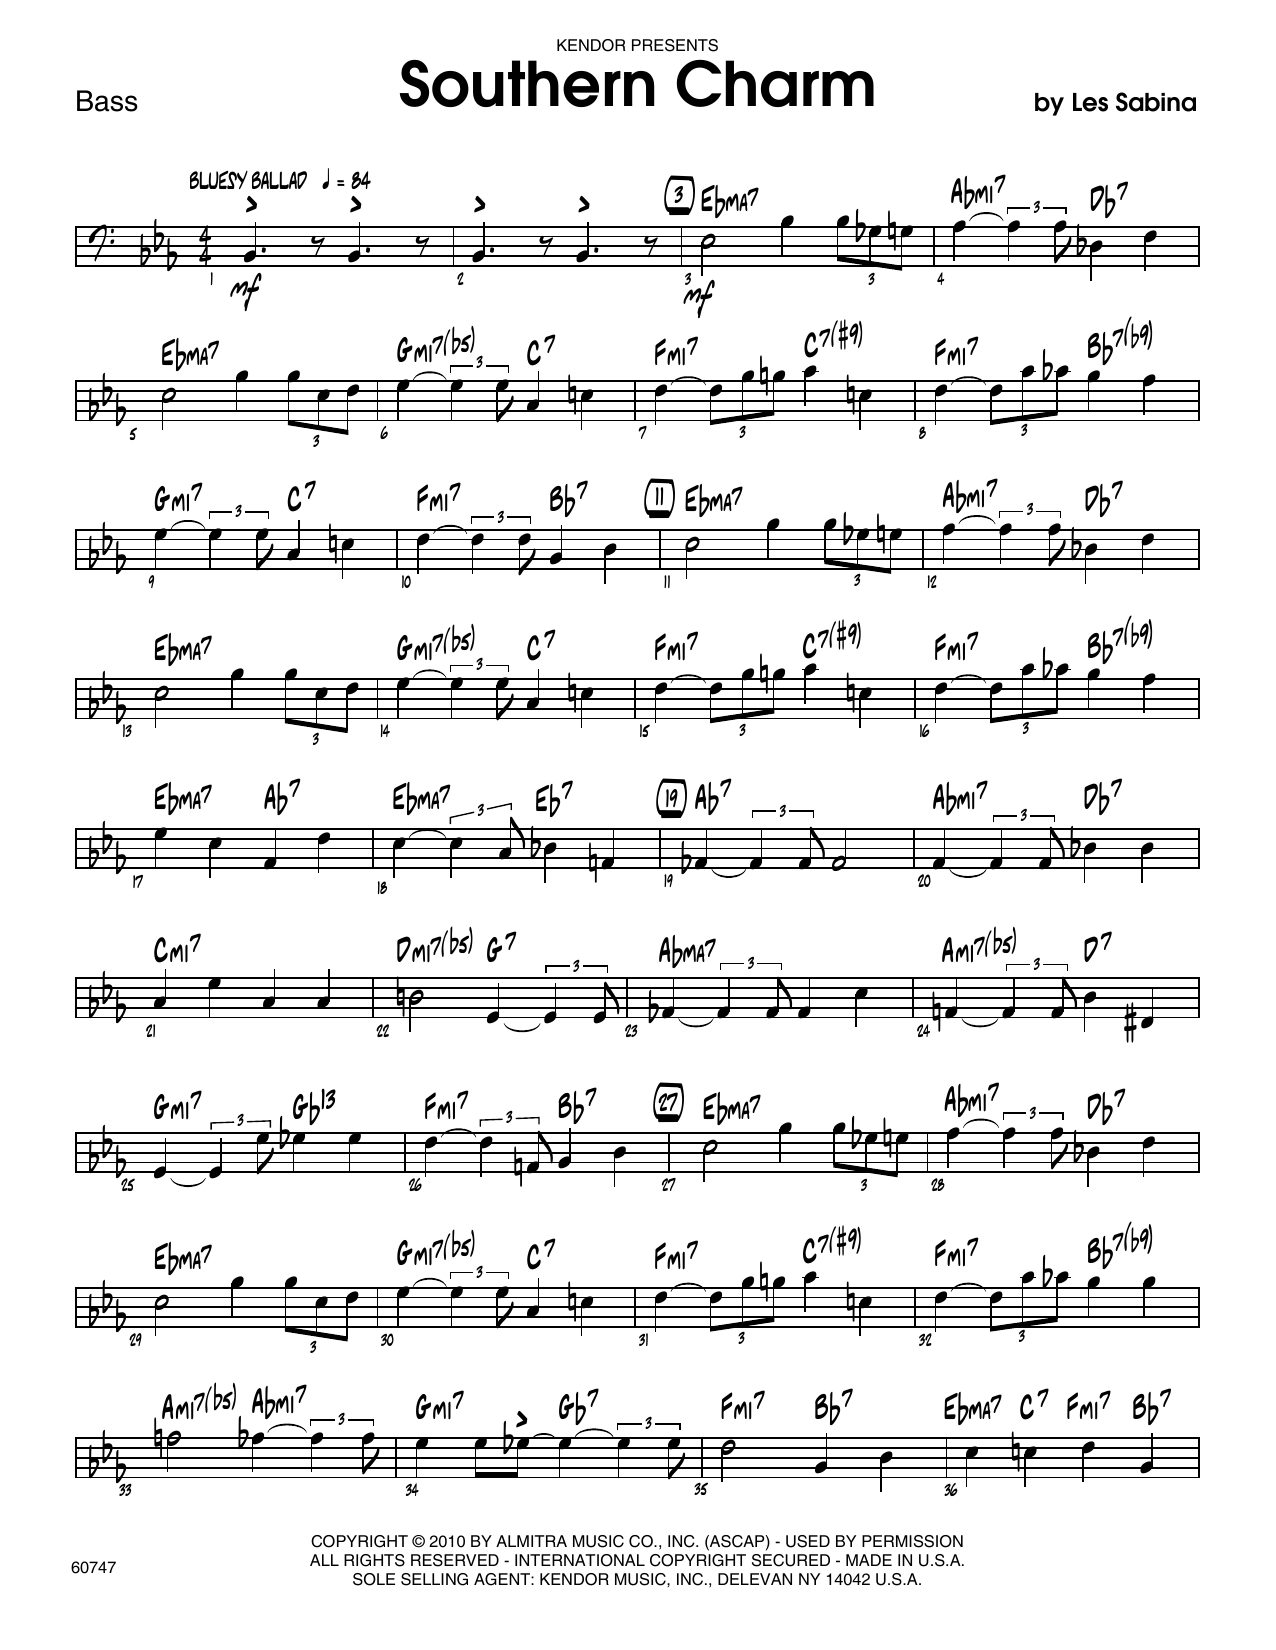 Southern Charm - Bass Sheet Music